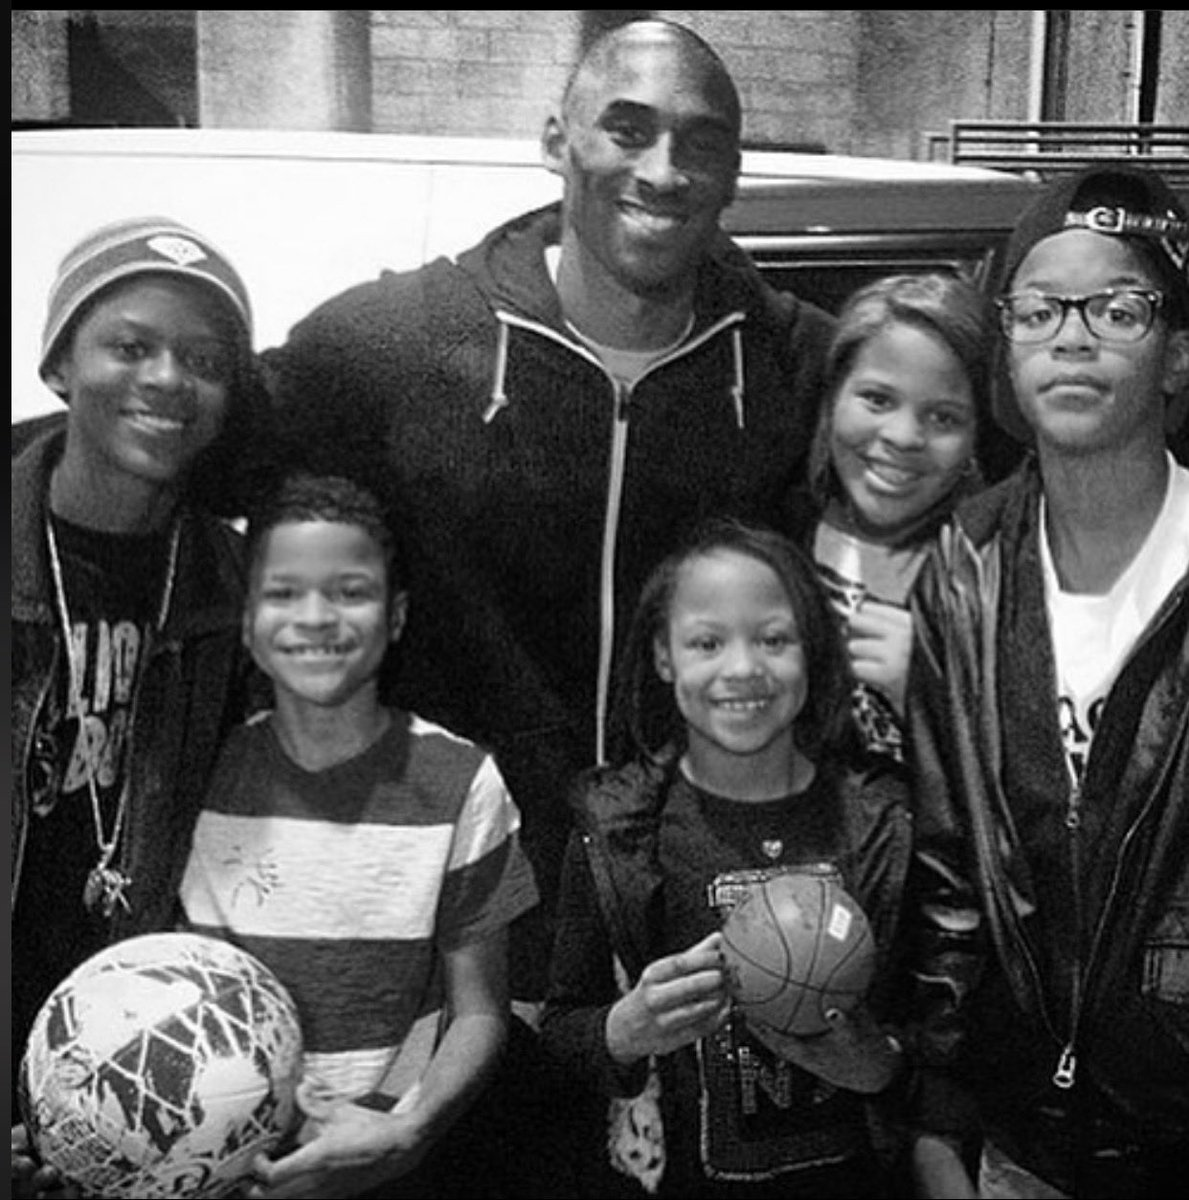 Kobe was so much more than an athlete, he was a family man. That was what we had most in common. I would hug his children like they were my own and he would embrace my kids like they were his. His baby girl Gigi was born on the same day as my youngest daughter Me'Arah. https://t.co/BHBPN5Wq8V